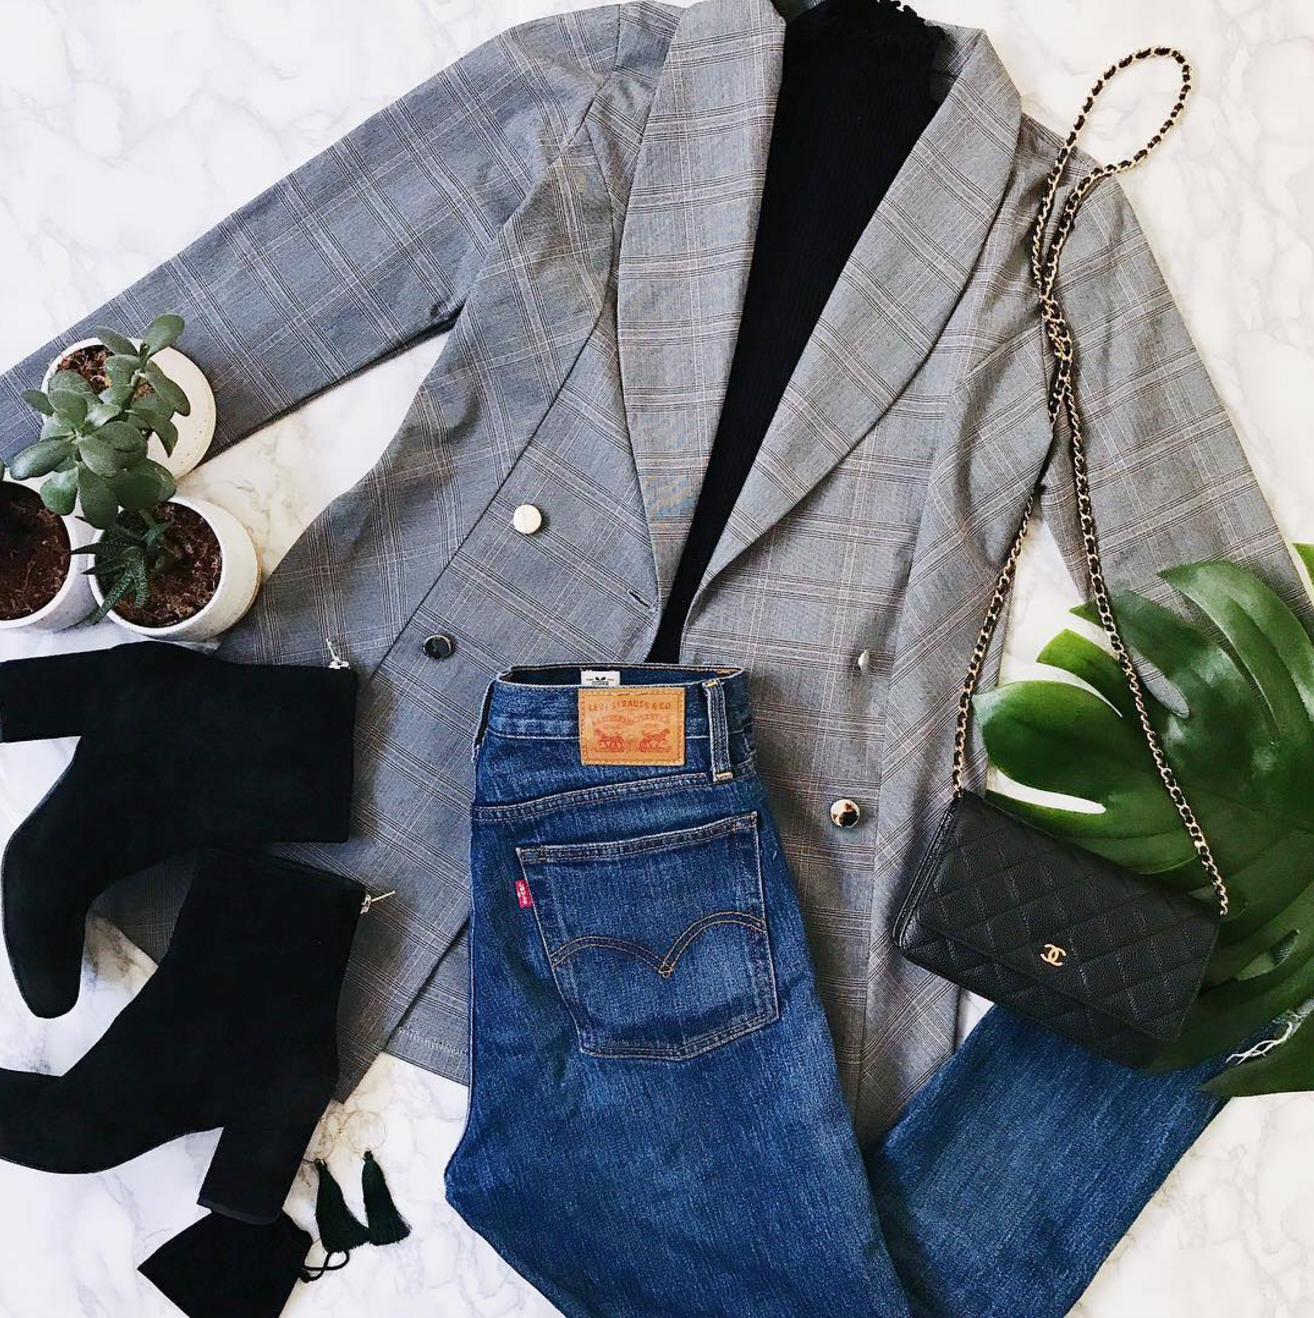 THE 5 MUST-HAVE ITEMS - for your fall wardrobe